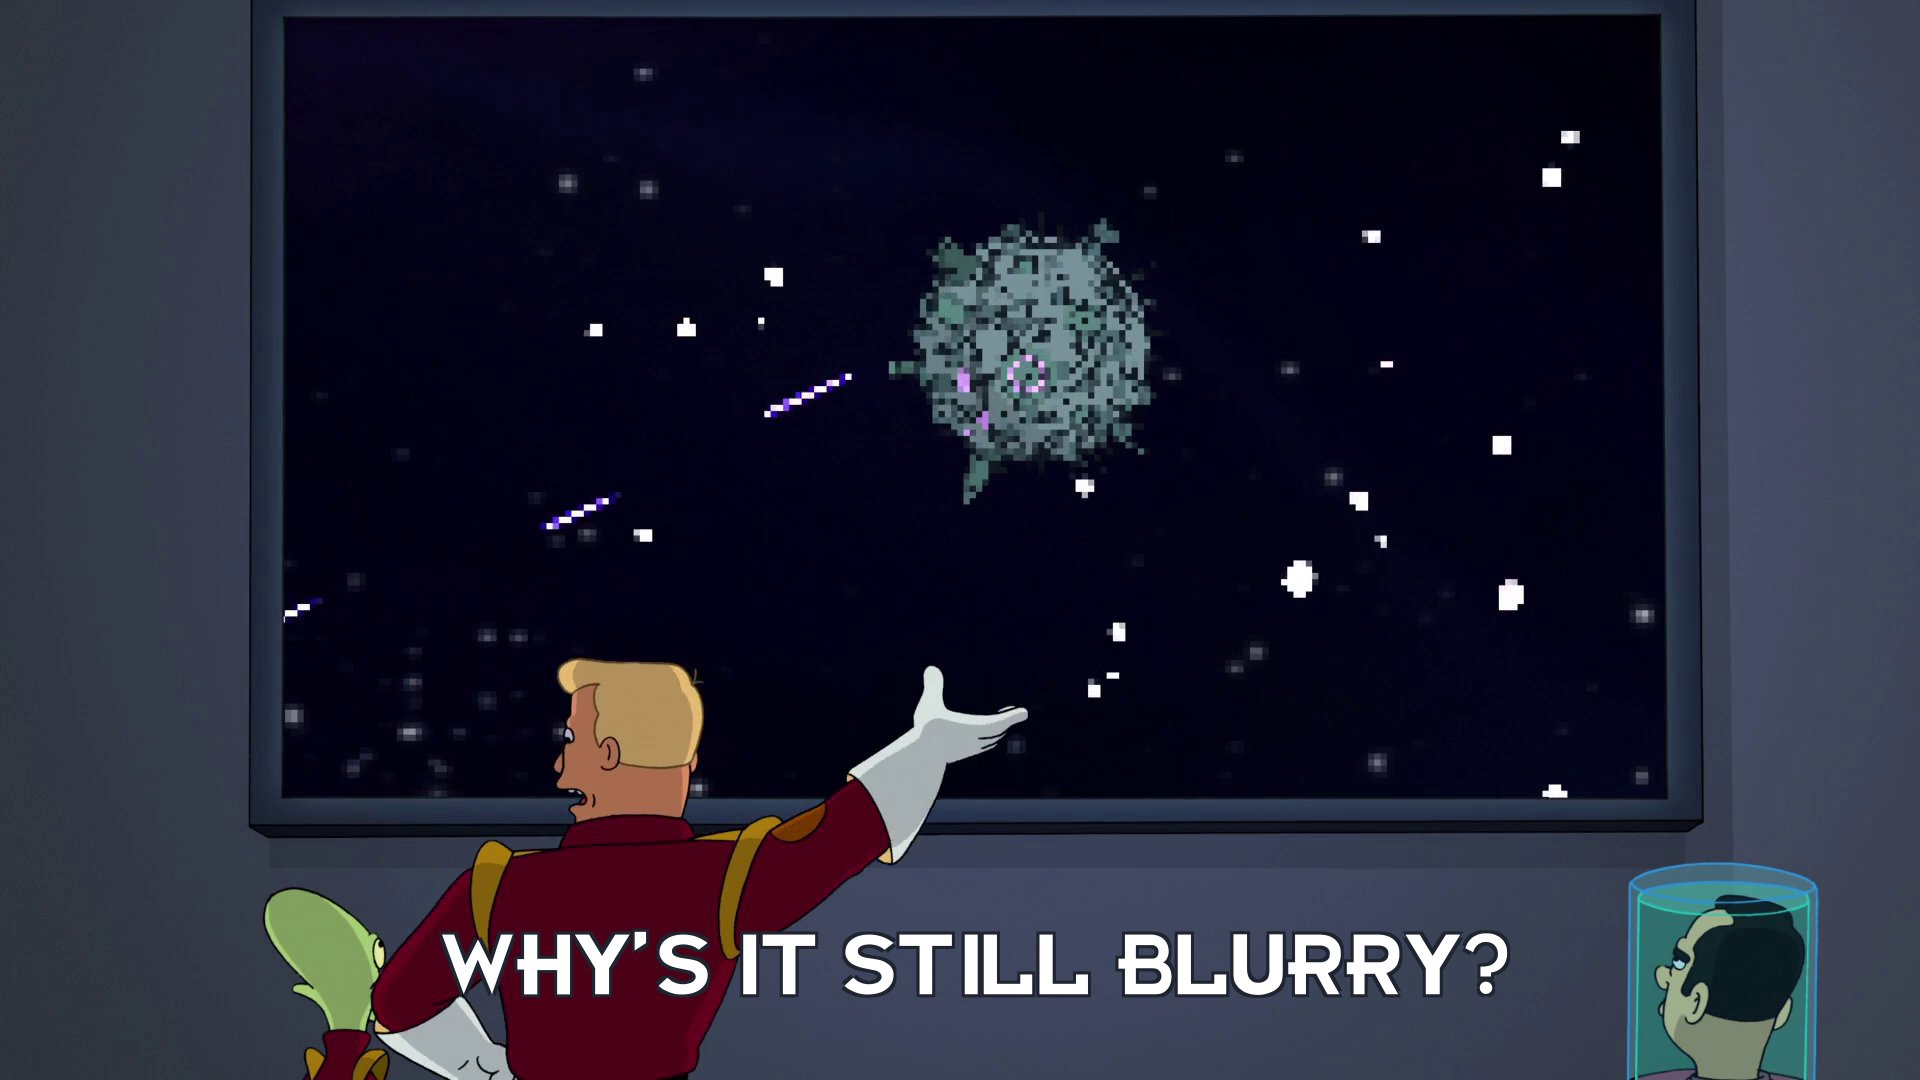 Zapp Brannigan: Why's it still blurry?